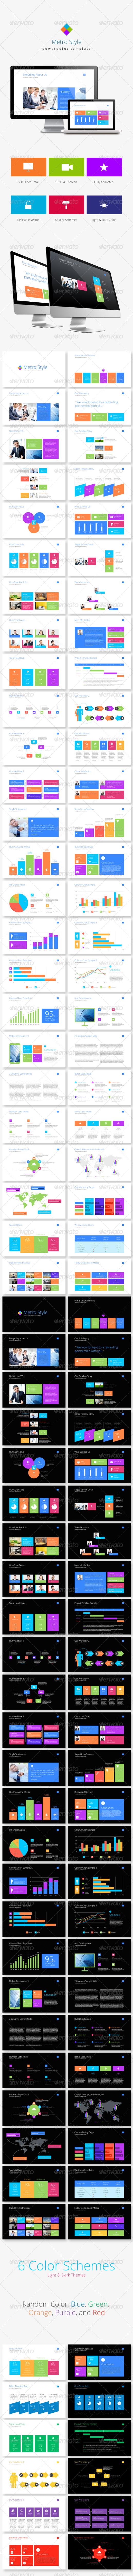 GraphicRiver Metro Style Powerpoint Presentation Vol 07 7730234